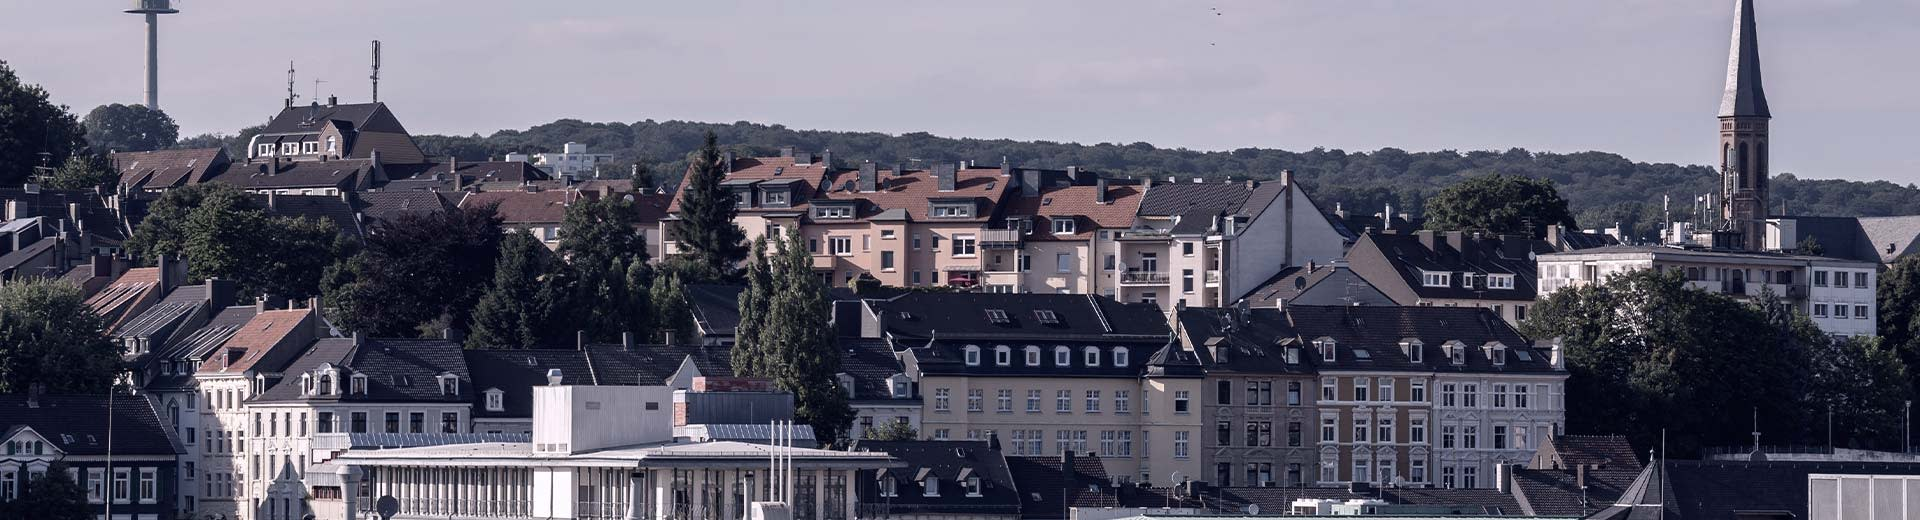 A medley of typical Wuppertal residential buildings in the foreground is contrasted by green hills in the distance